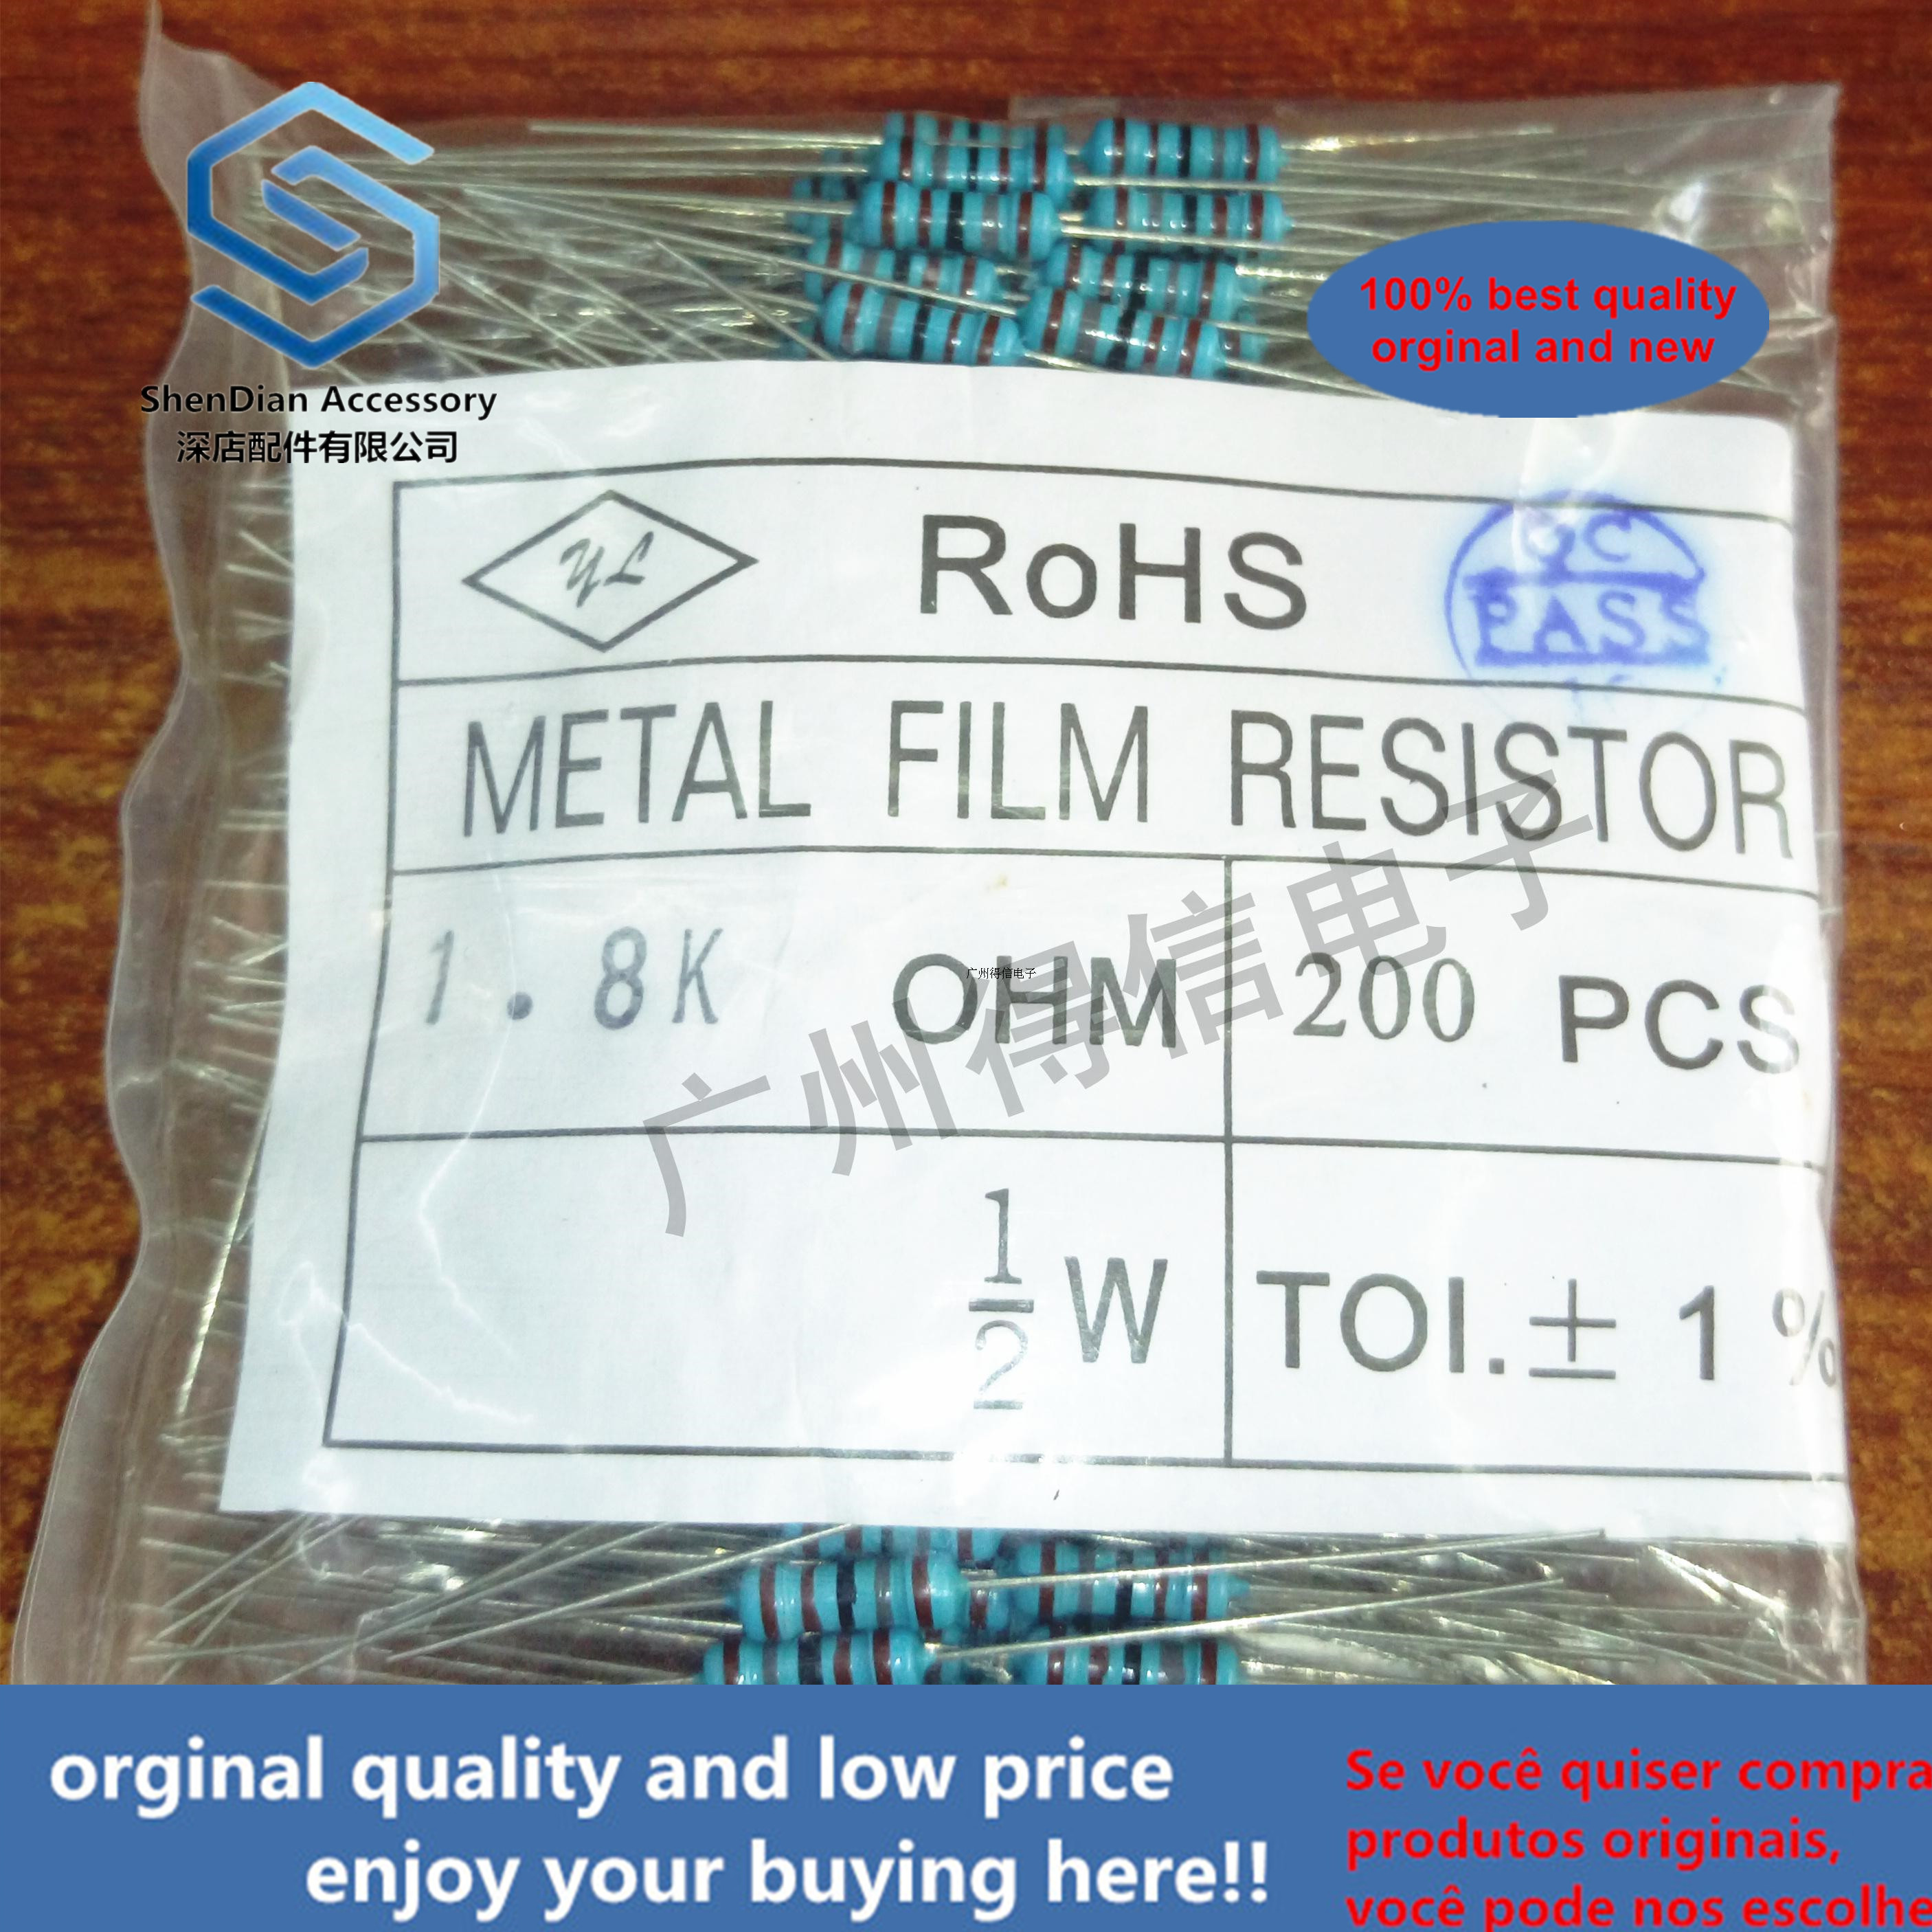 200pcs 1 / 2W 120R 120 Euro 1% Brand New Metal Film Iron Feet Resistor Bag 200 Pcs Per Pack